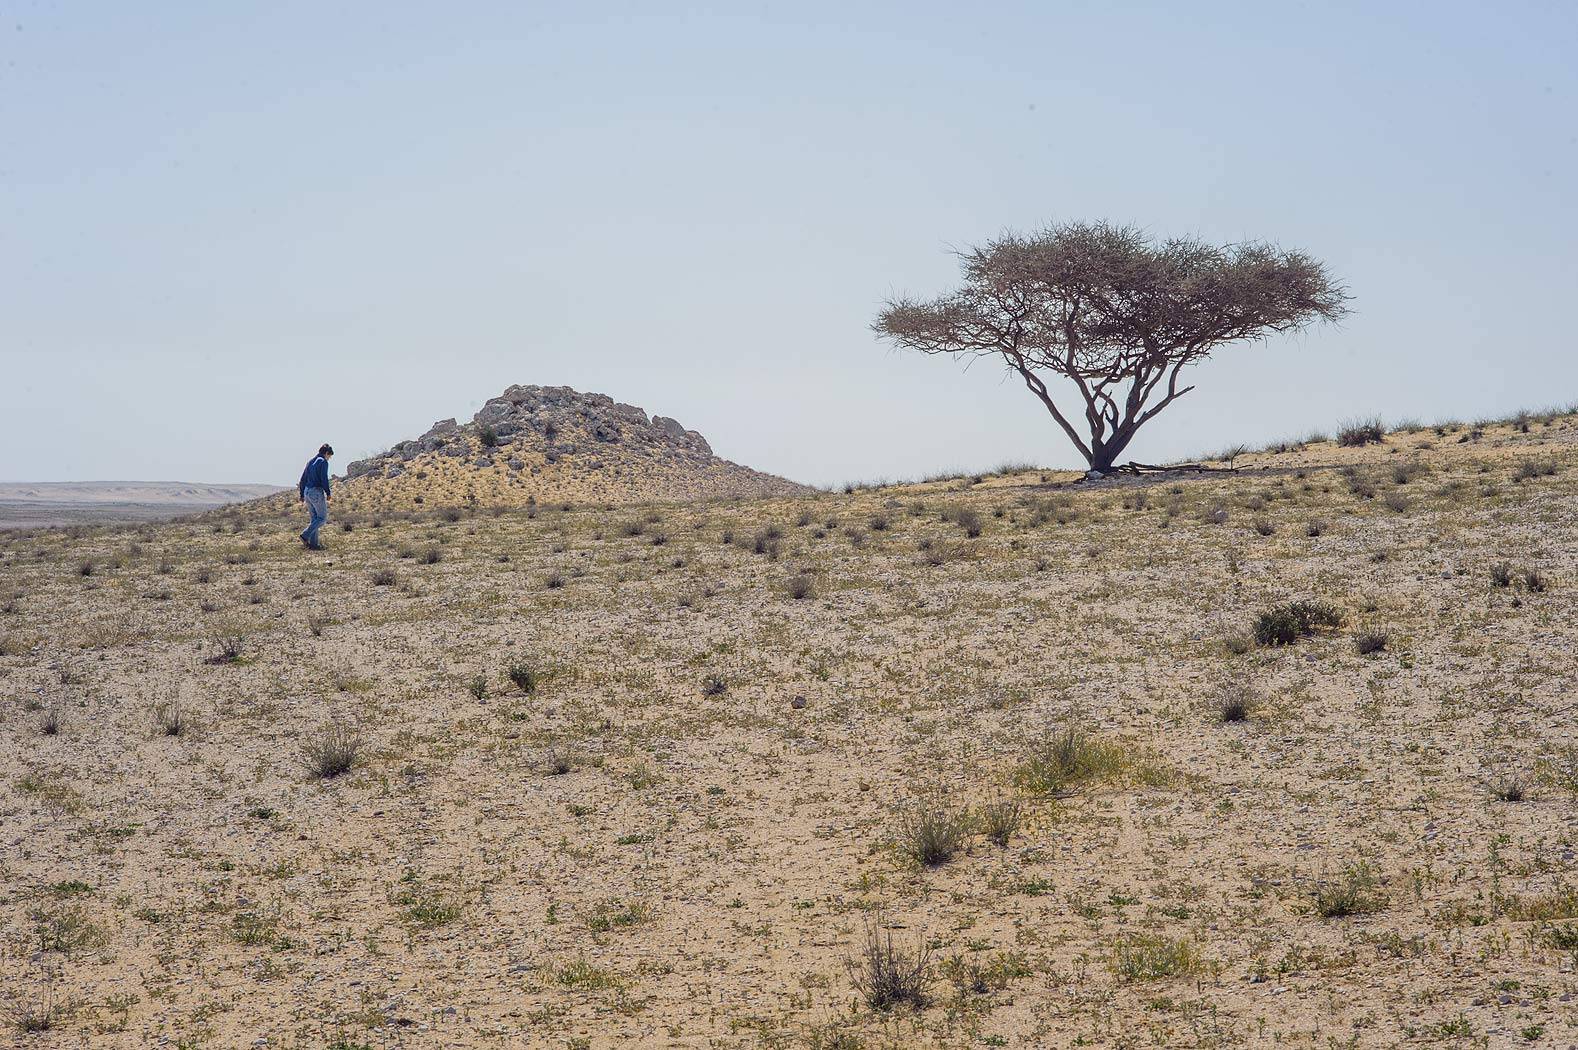 Rocky desert with acacia tree near Umm Bab in south-western Qatar